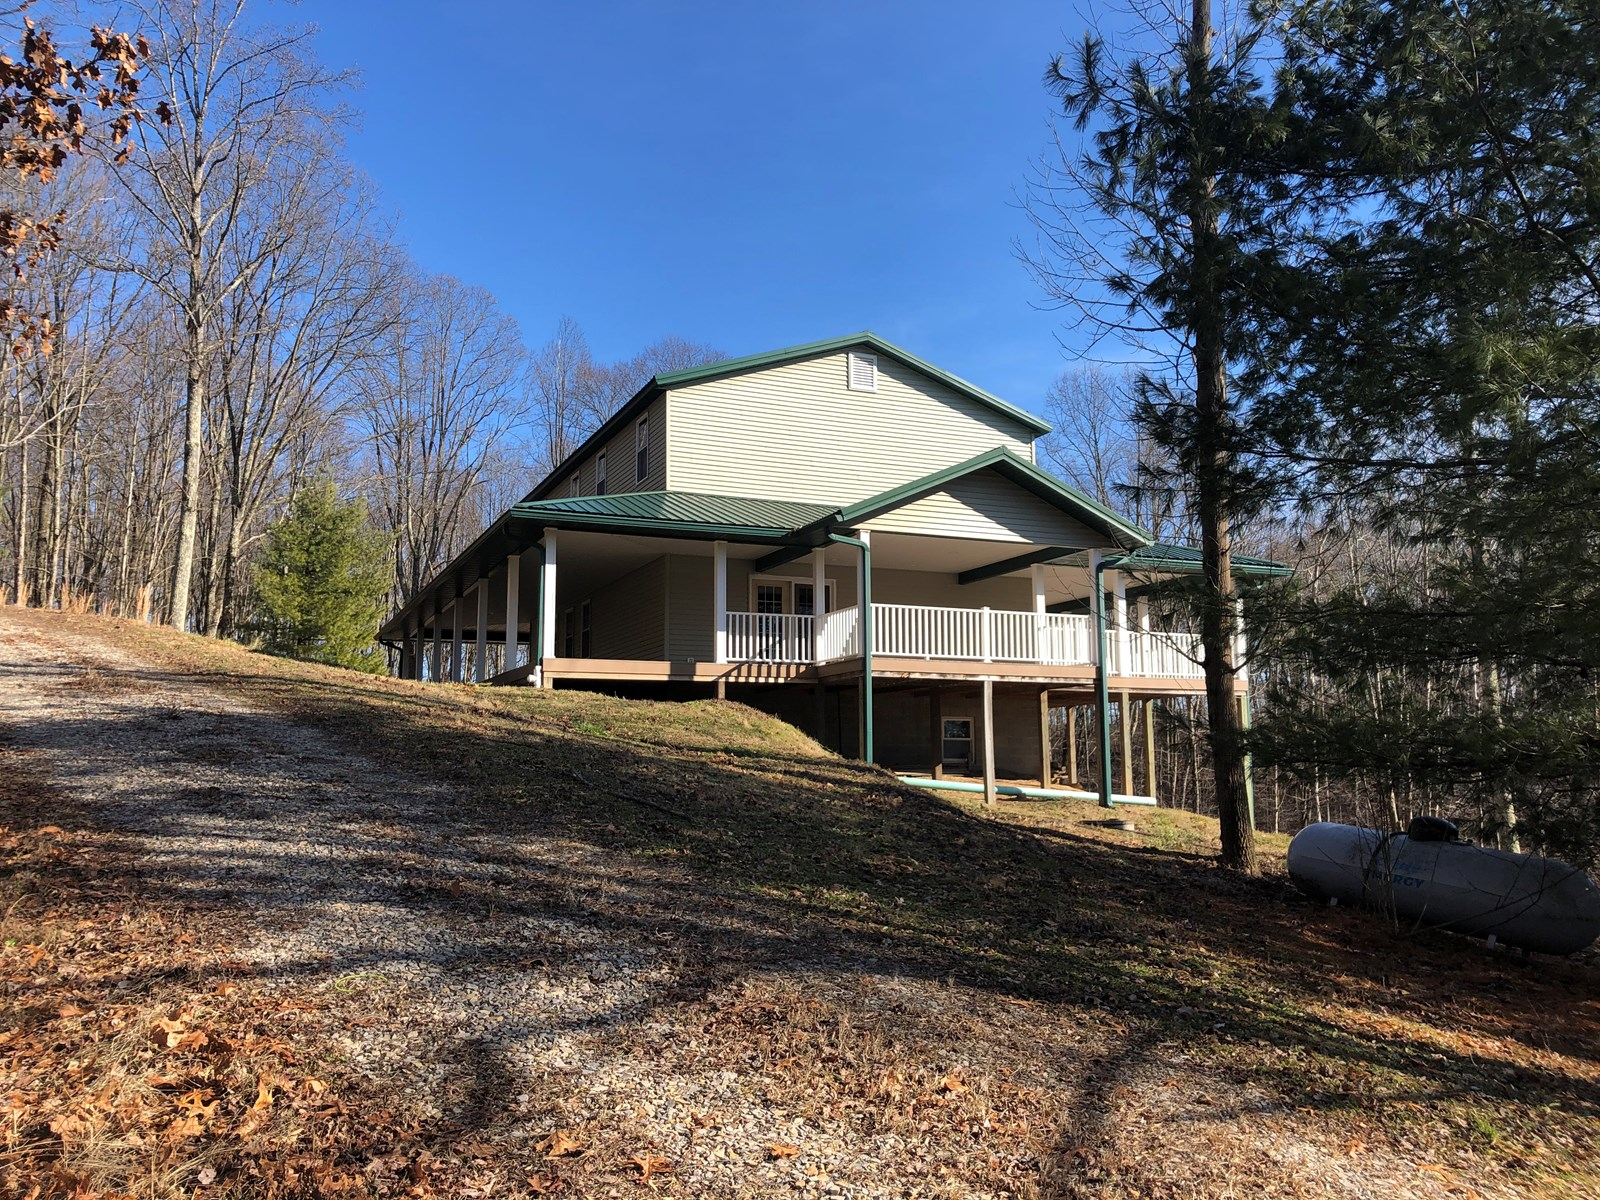 Monroe County, OH Recreational Hunting Property with Lodge